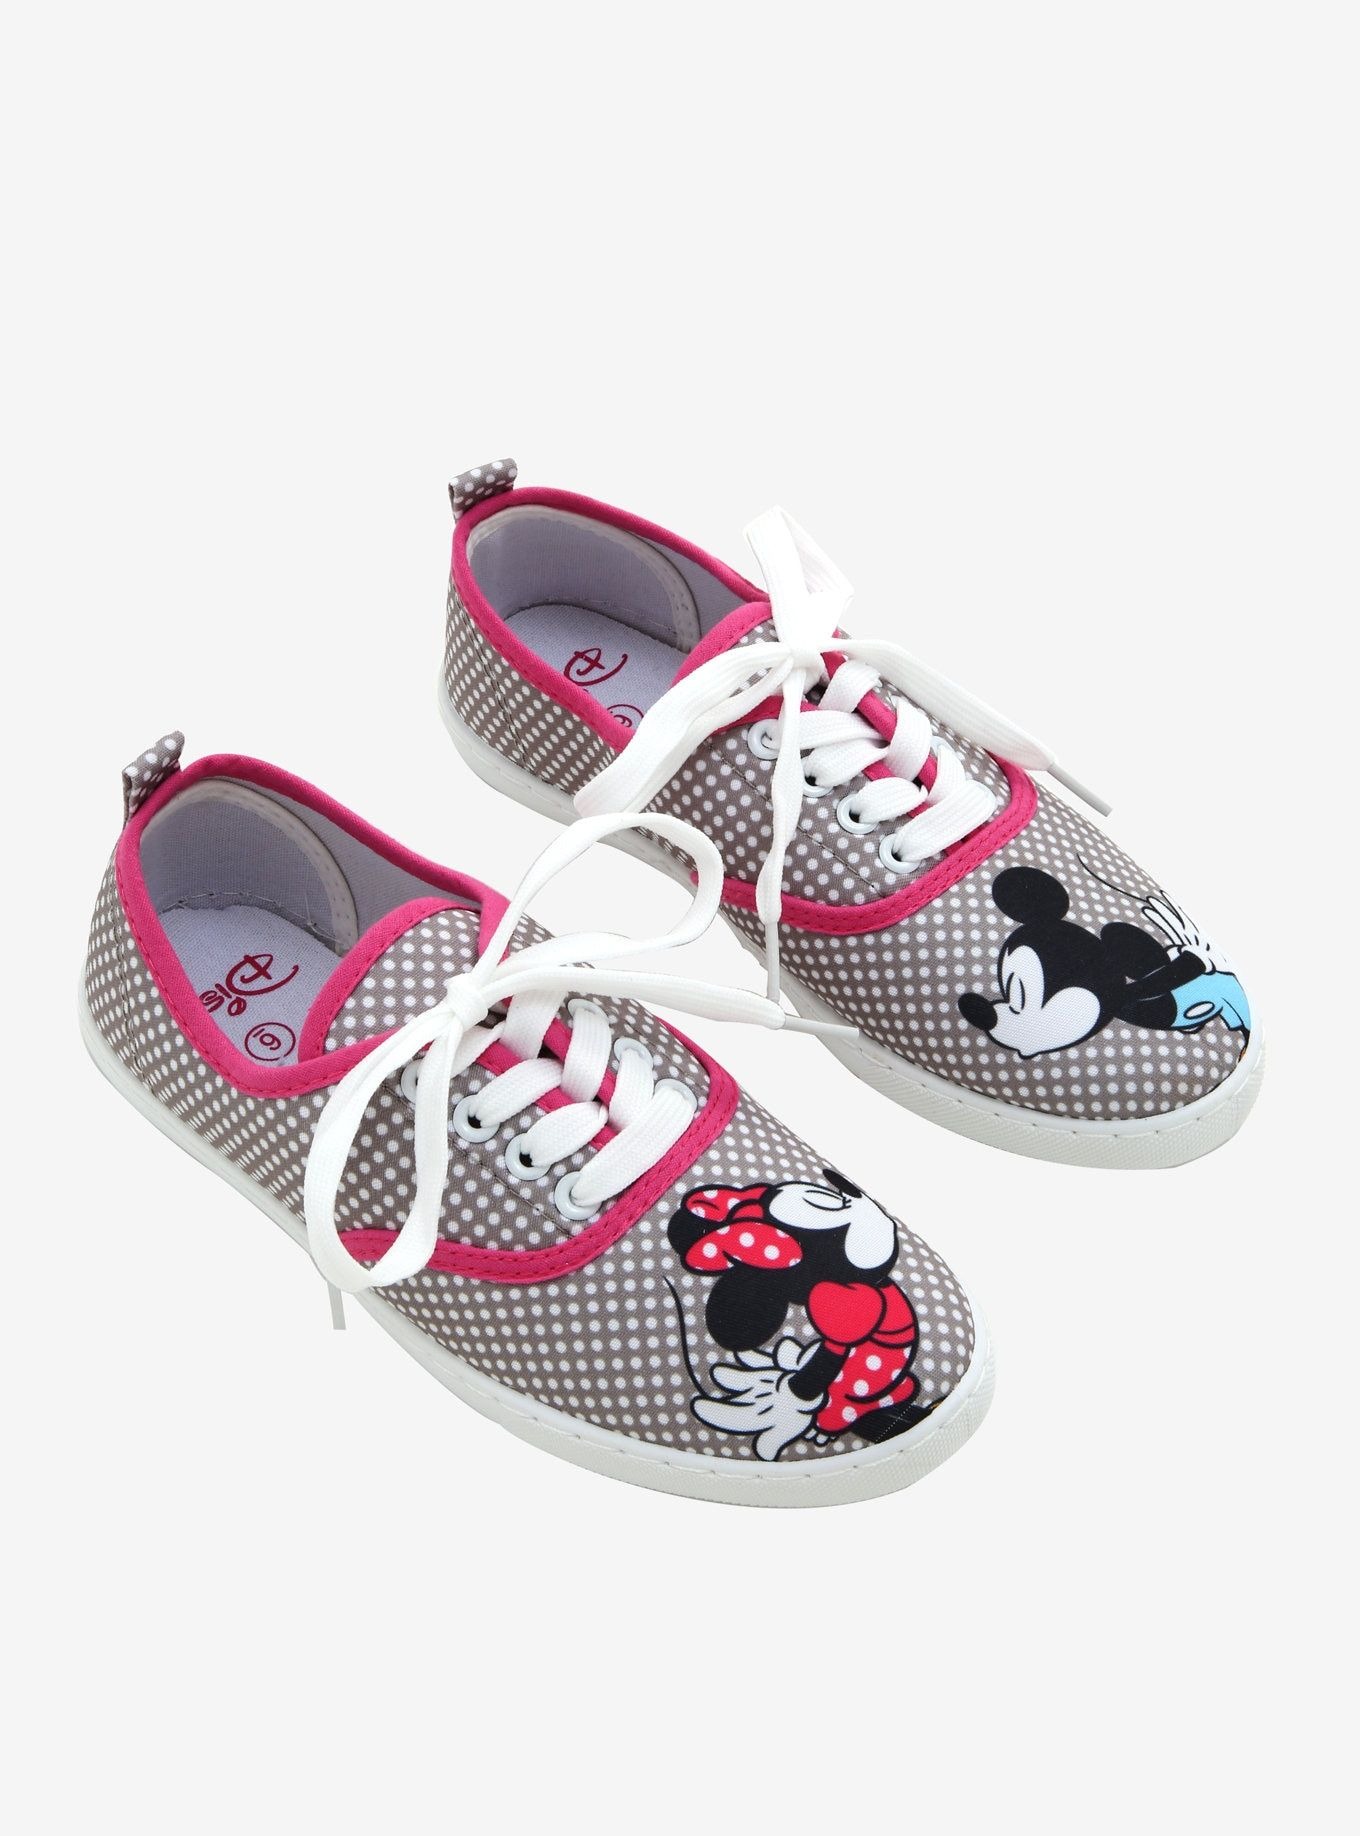 54a23cbbf2bf0 Disney Mickey Mouse & Minnie Mouse Kissing Lace-Up Sneakers in 2019 ...